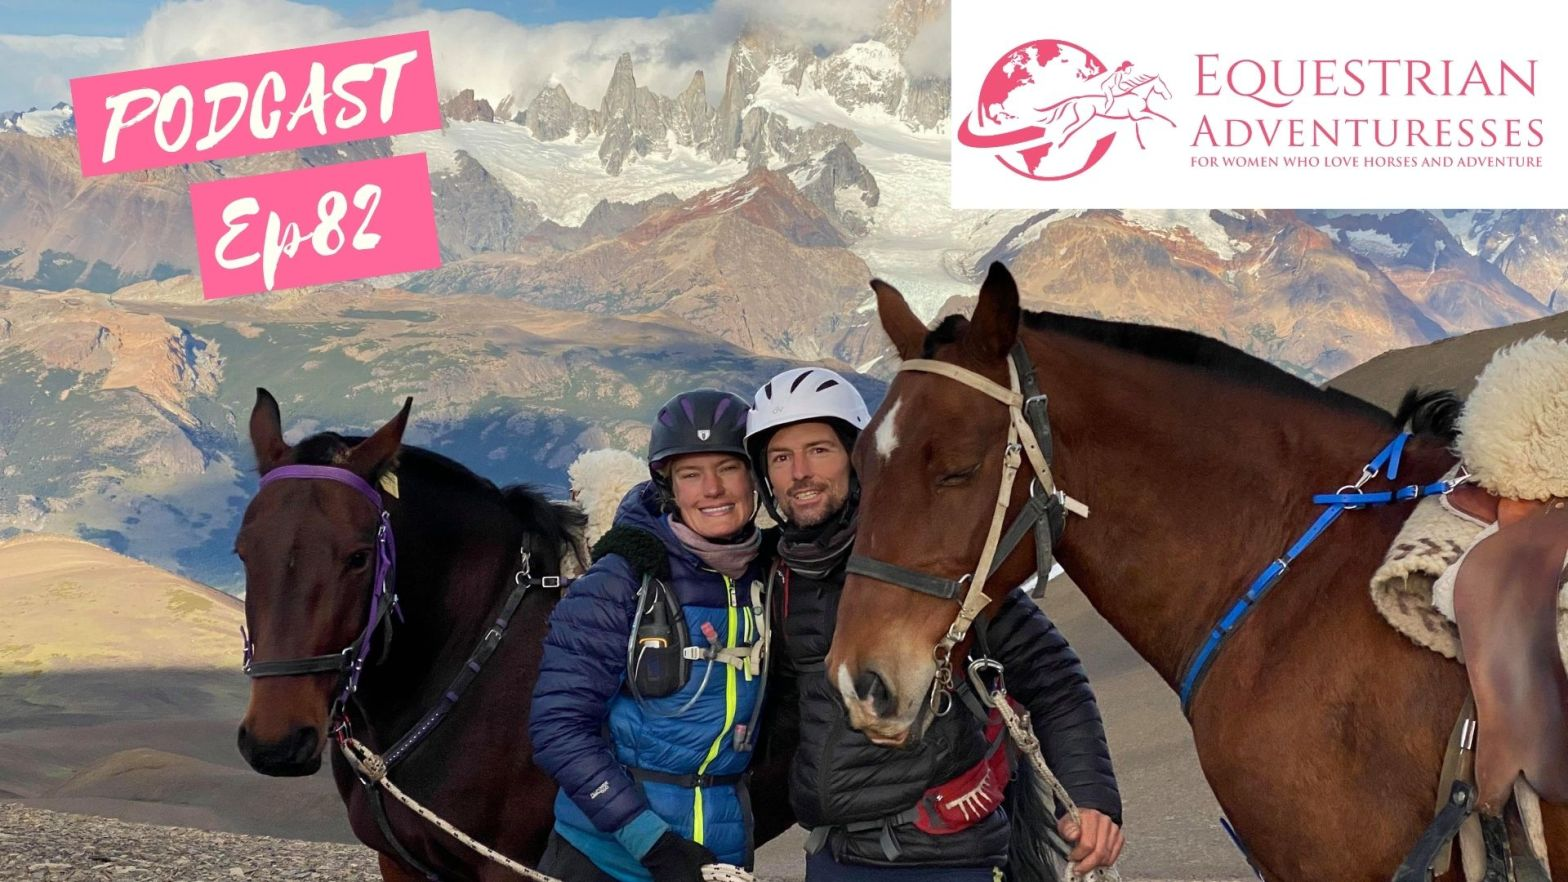 Equestrian Adventuresses Travel and Horse Podcast Ep 81 - The Gaucho Derby